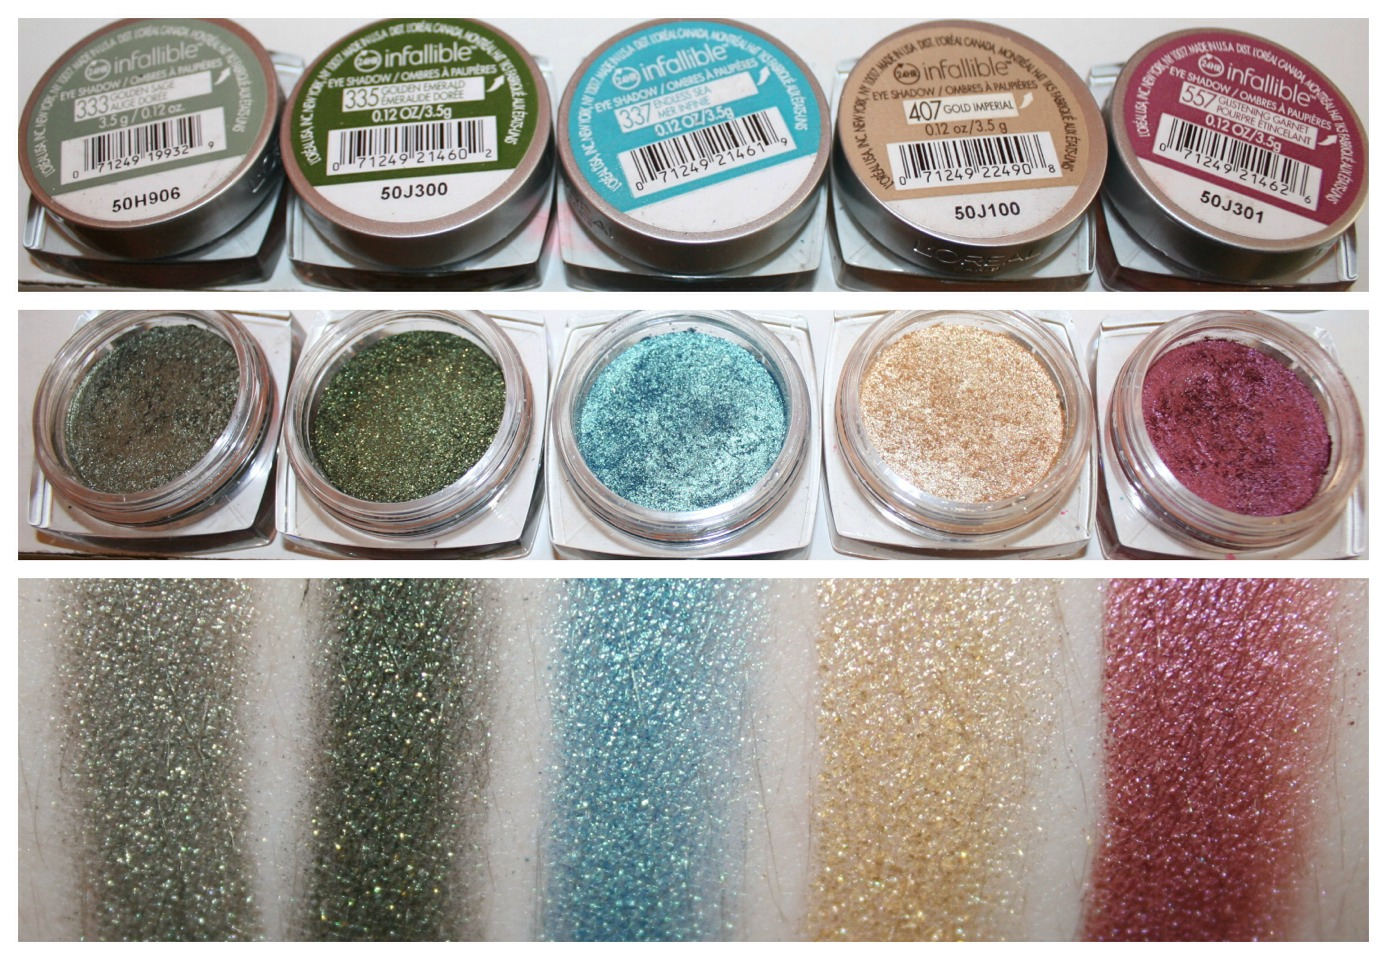 10. L'Oréal Infallible Eyeshadow: These $8 shadows aren't messing around when it comes to ultra-pigmented color, though you'll want to prime your lids first with a good base.